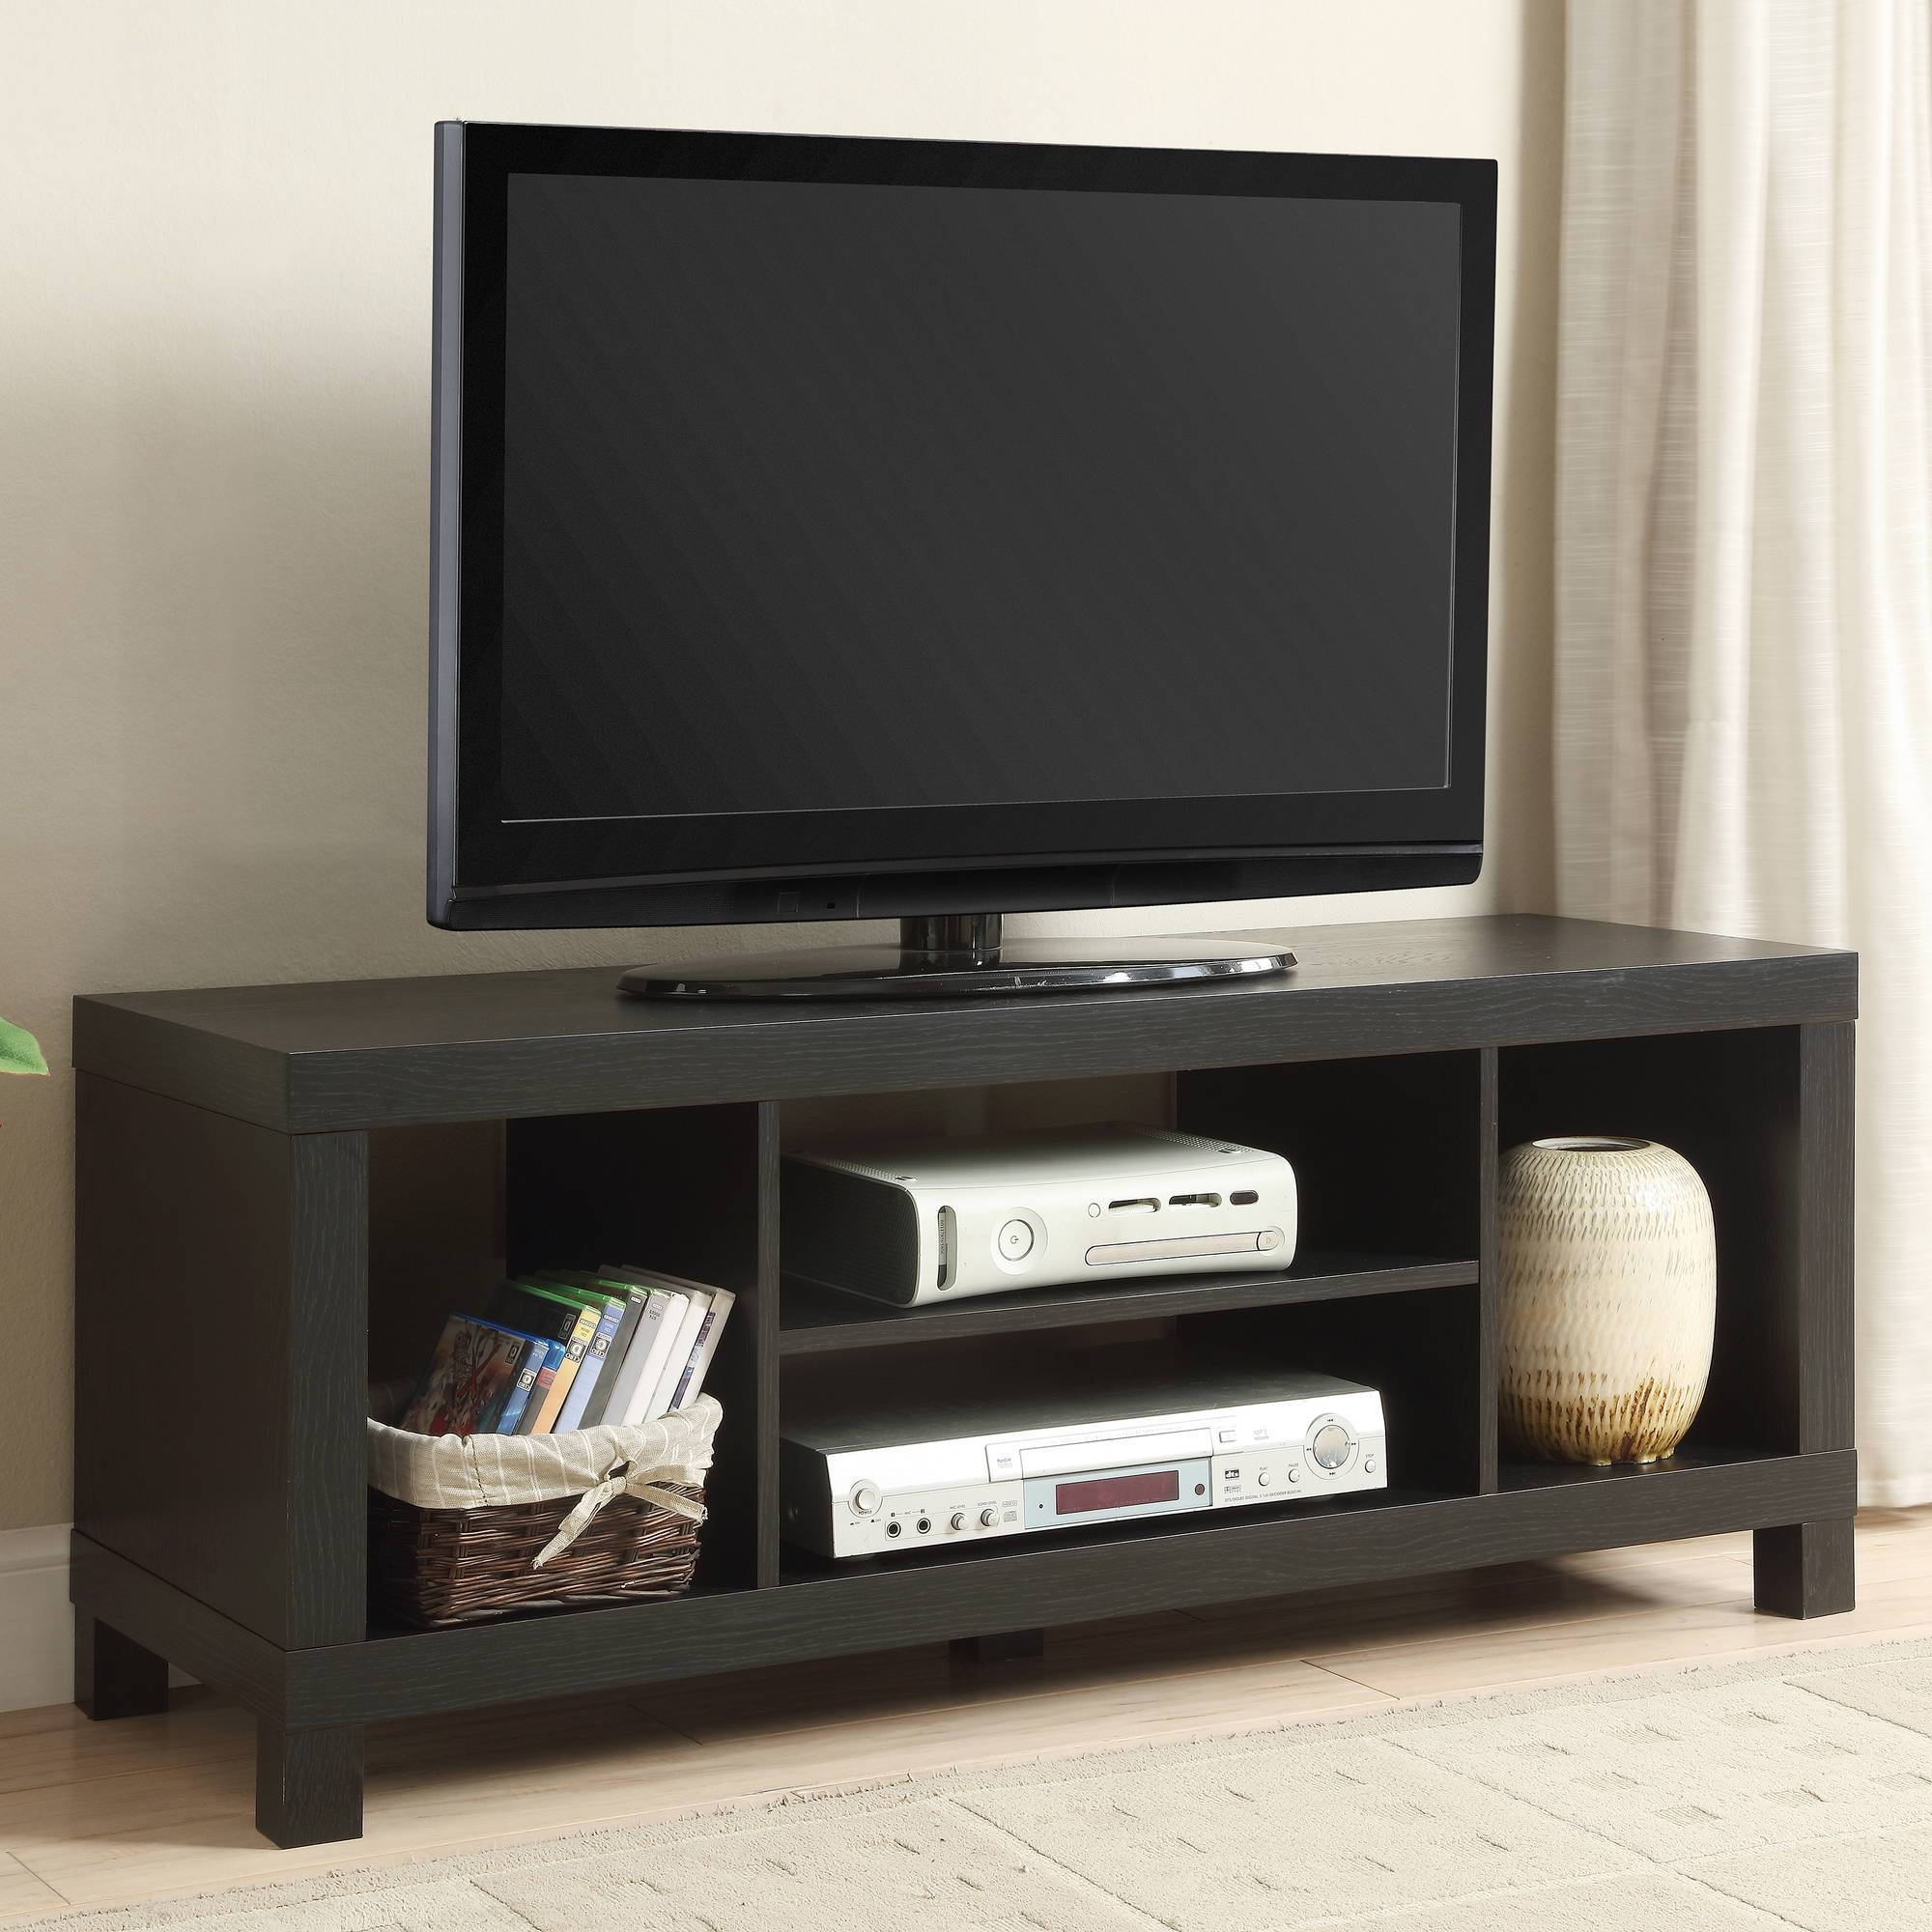 Buying Guide For Small Tv Stands – Furniture Depot Inside Unique Corner Tv Stands (View 14 of 15)